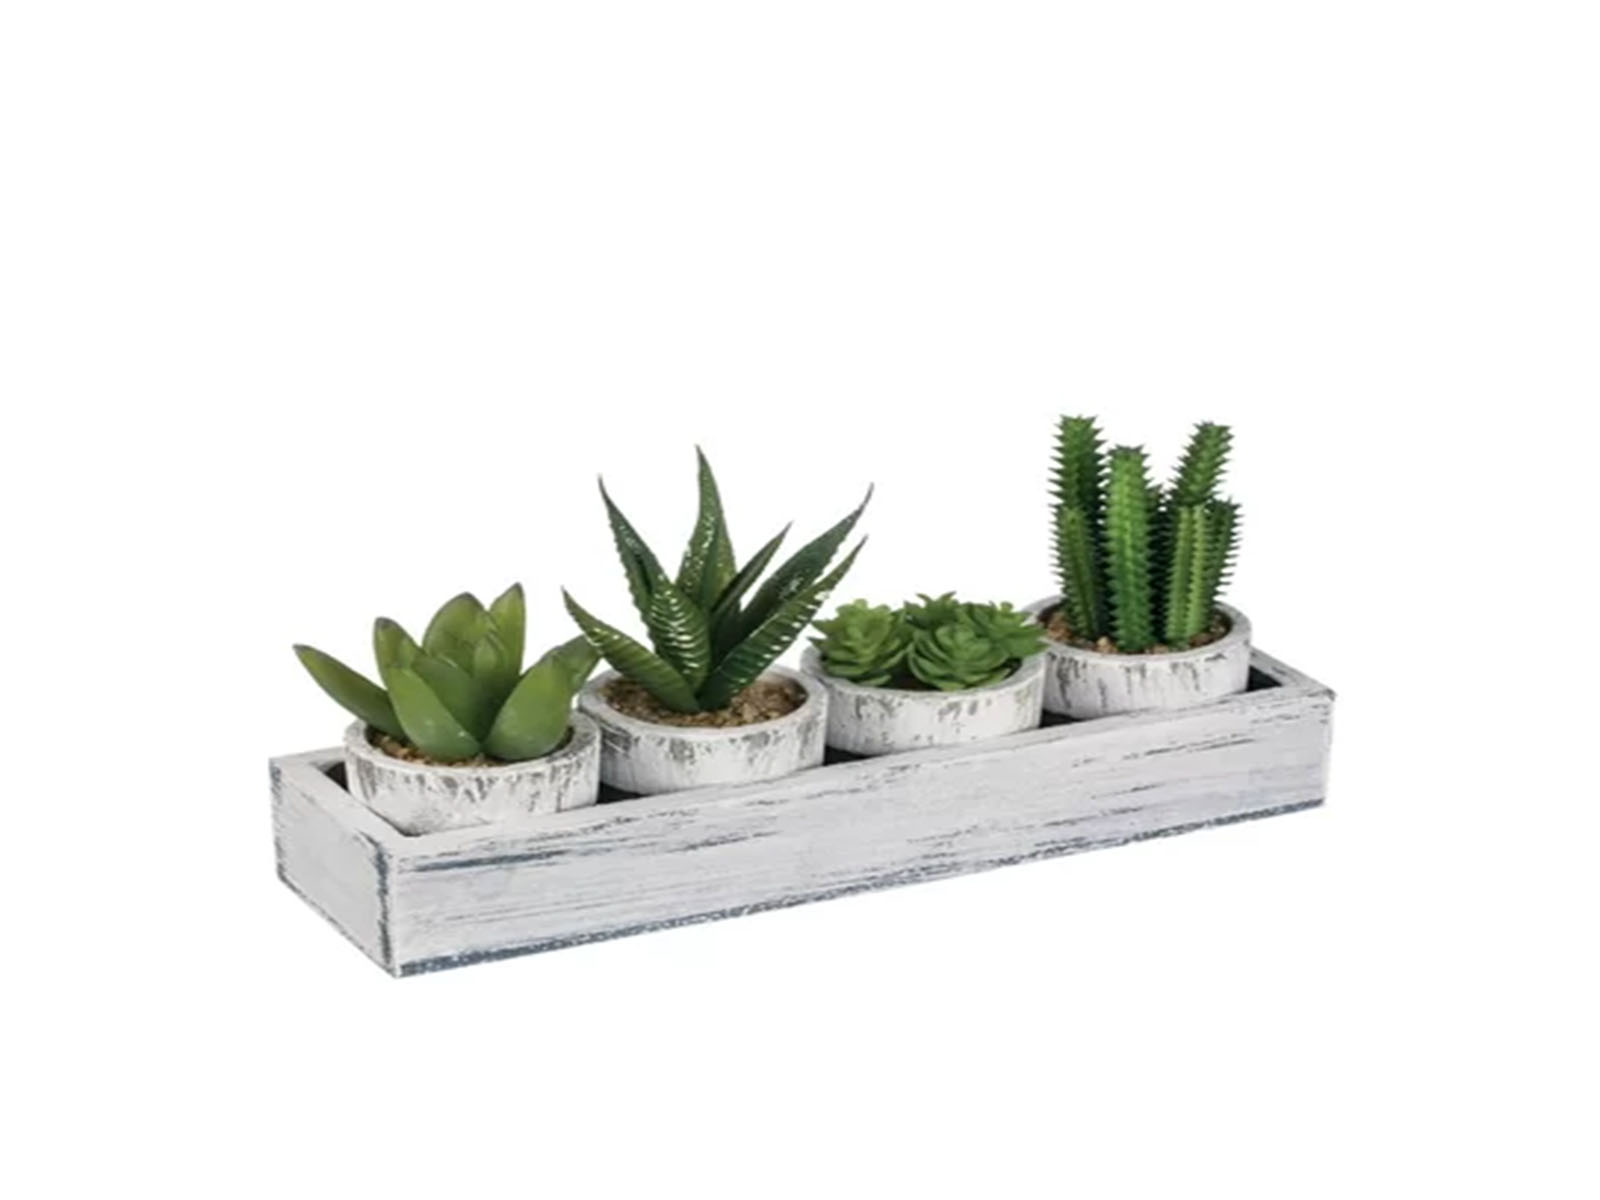 4 Piece Cactus Plant in Tray Set